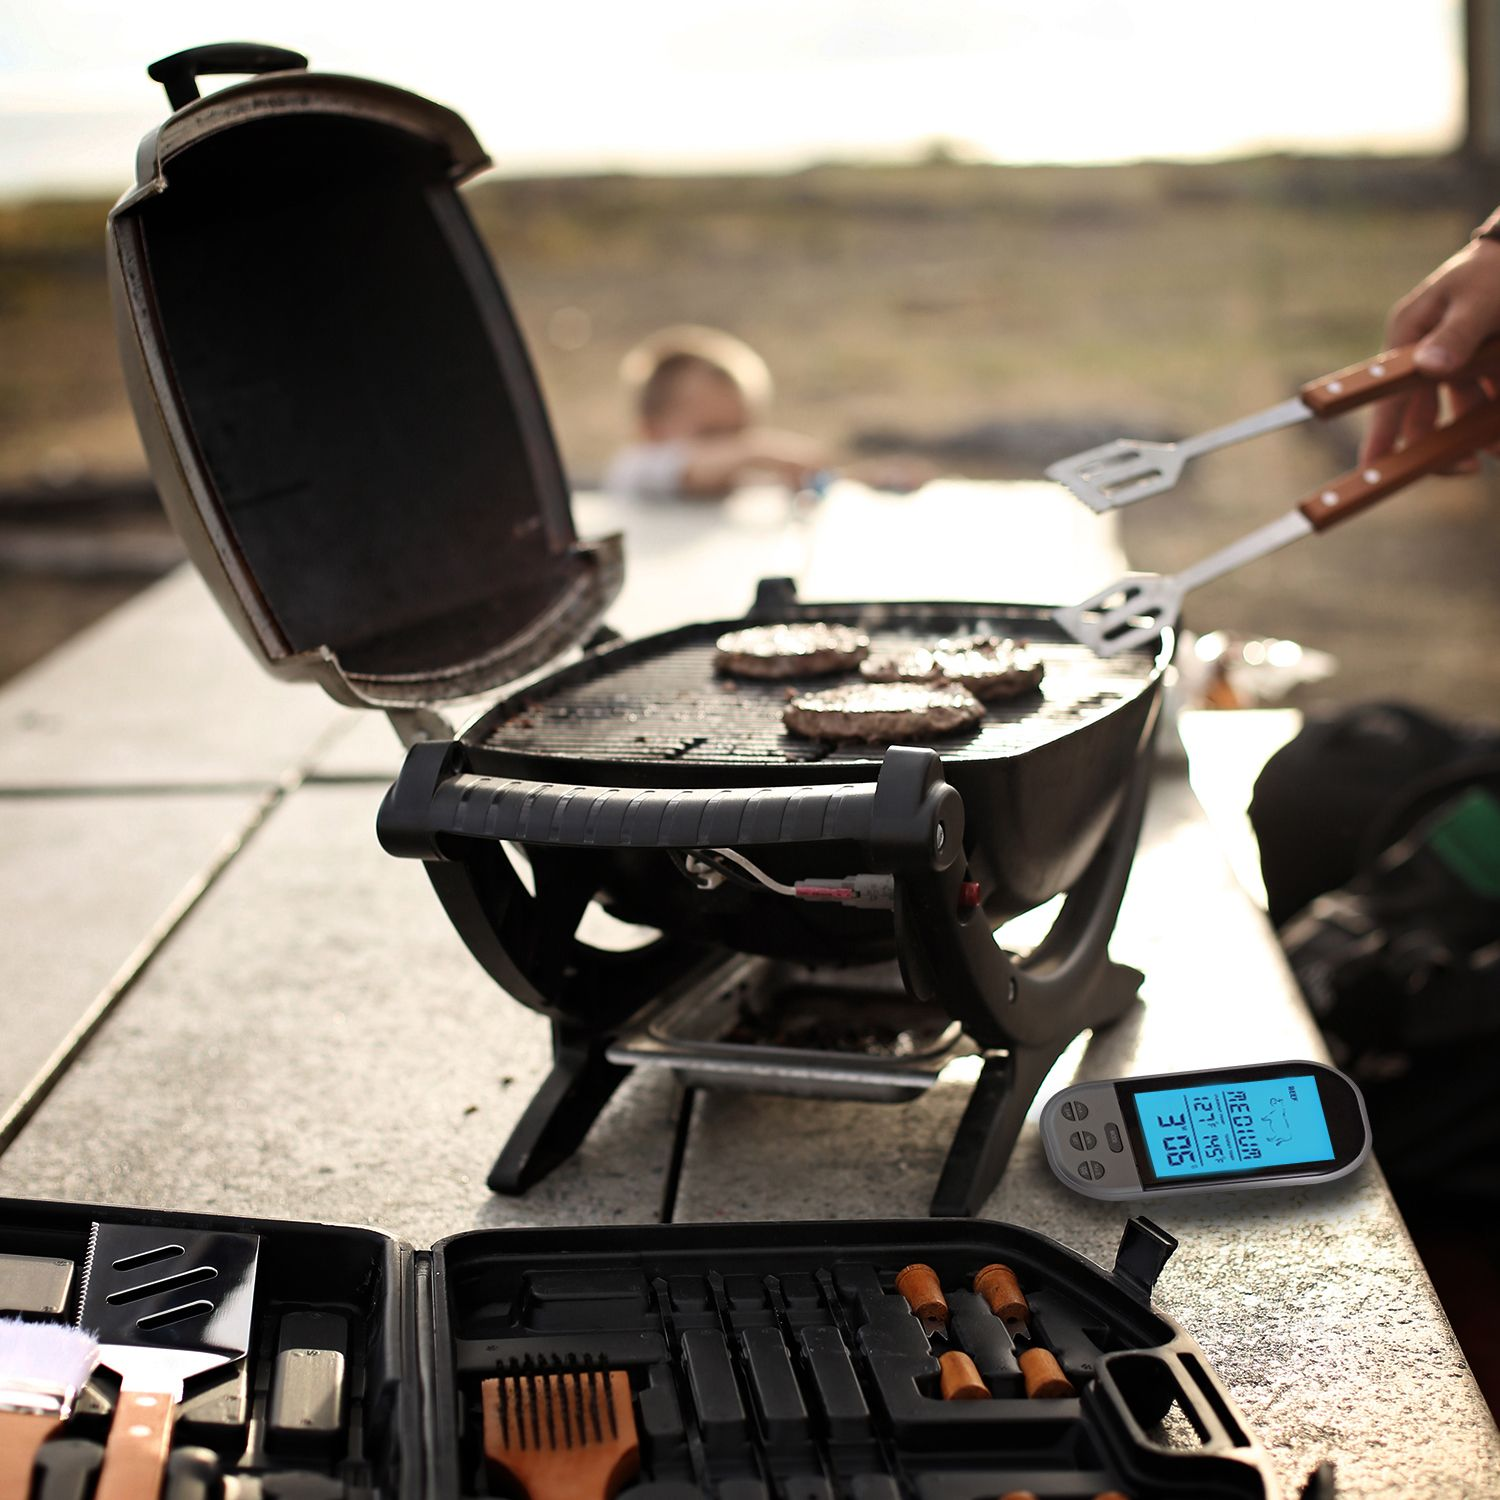 Flamen Wireless Digital BBQ Thermometer and Remote Control. See our grilling board for great grill ideas | Aspectek